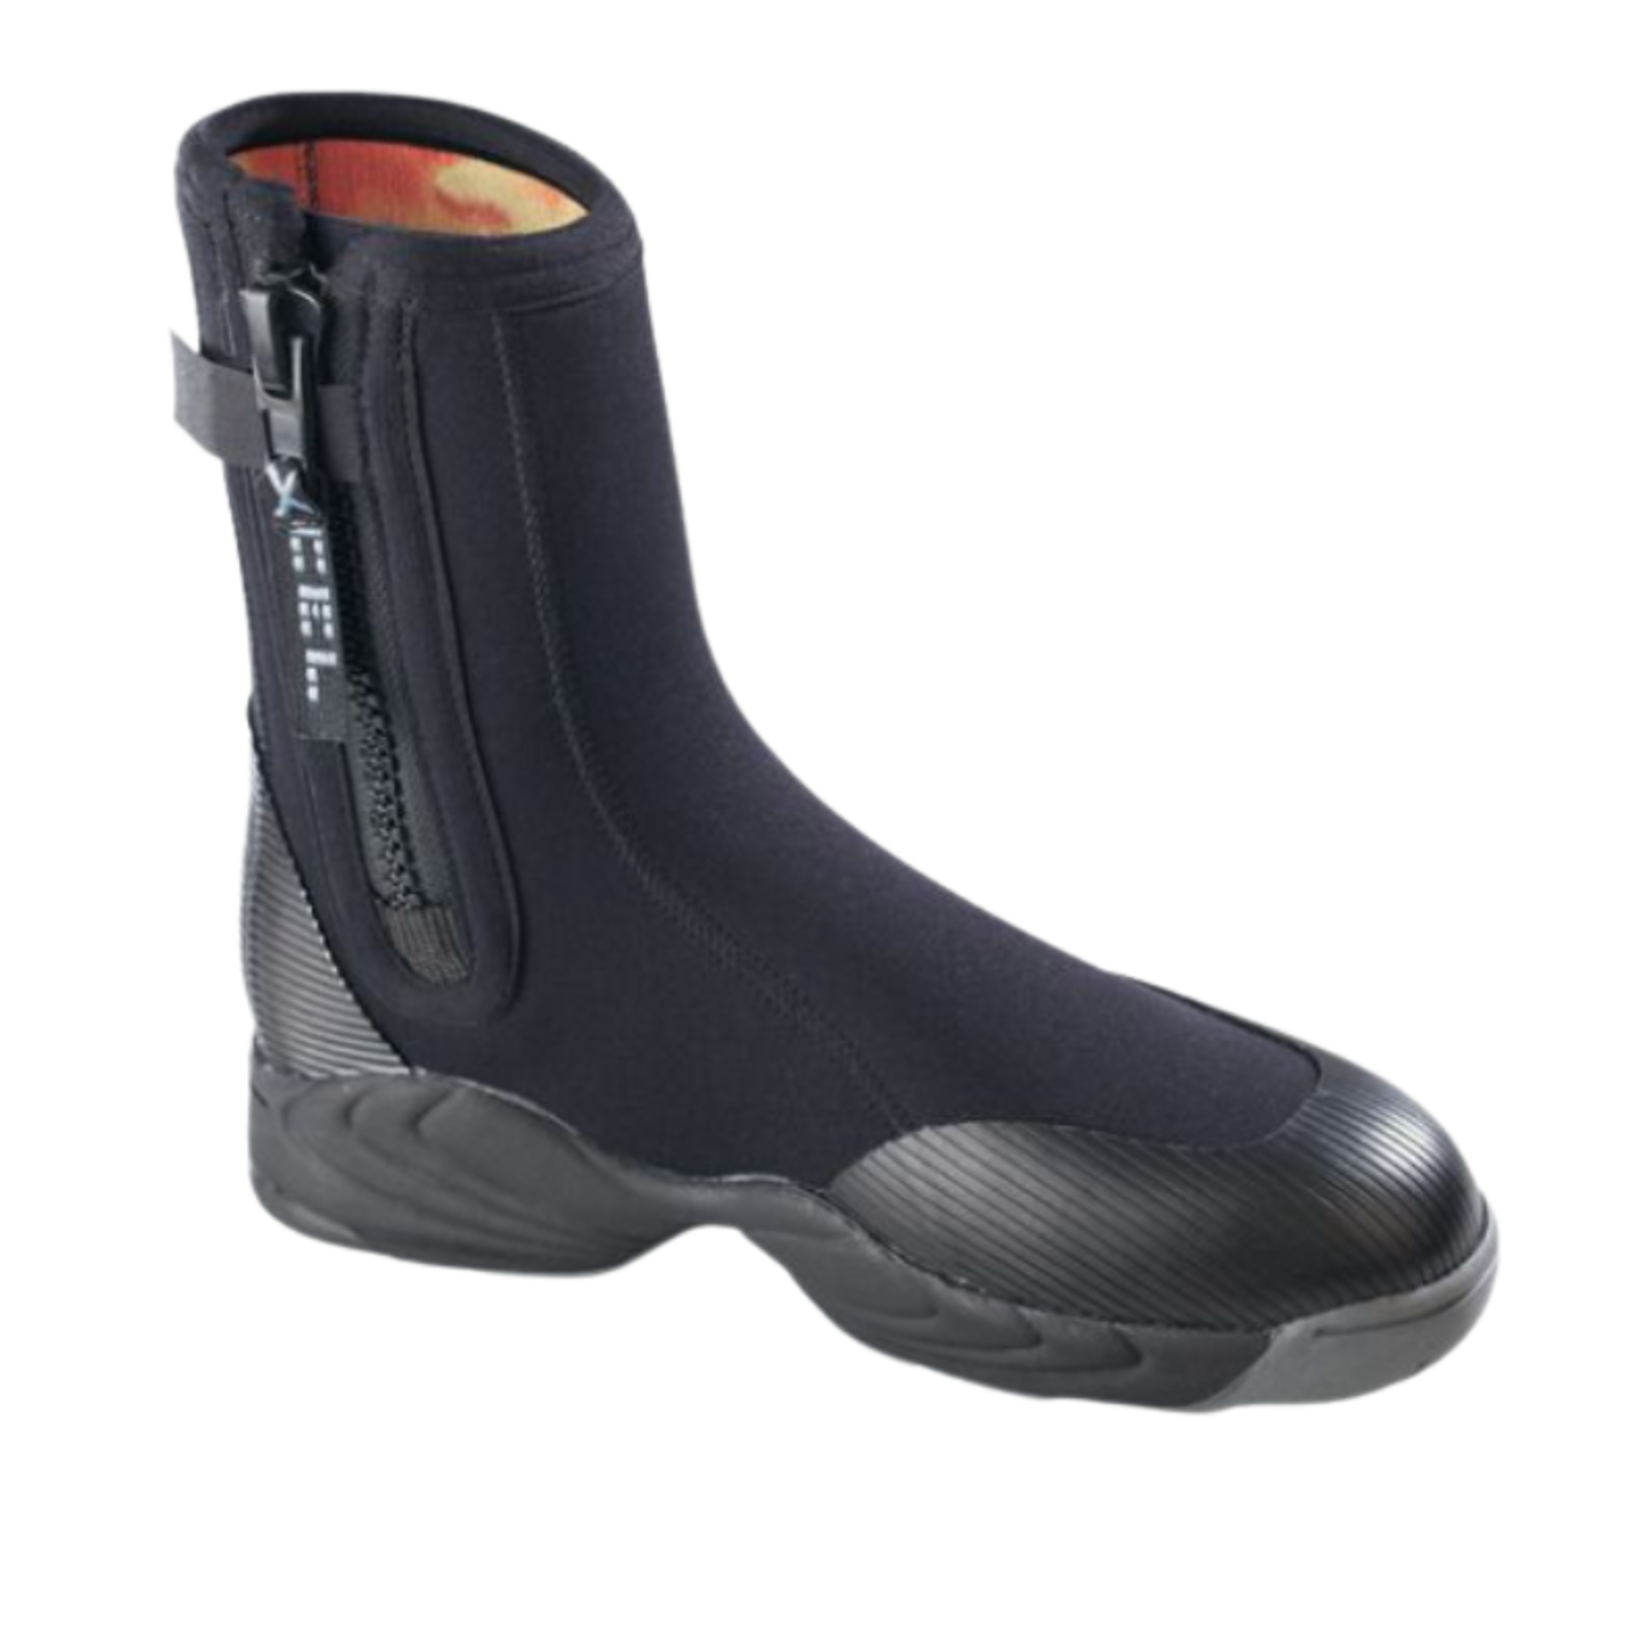 XCEL XCEL ThermoFlex Molded Sole Dive Boot 6.5 mm.